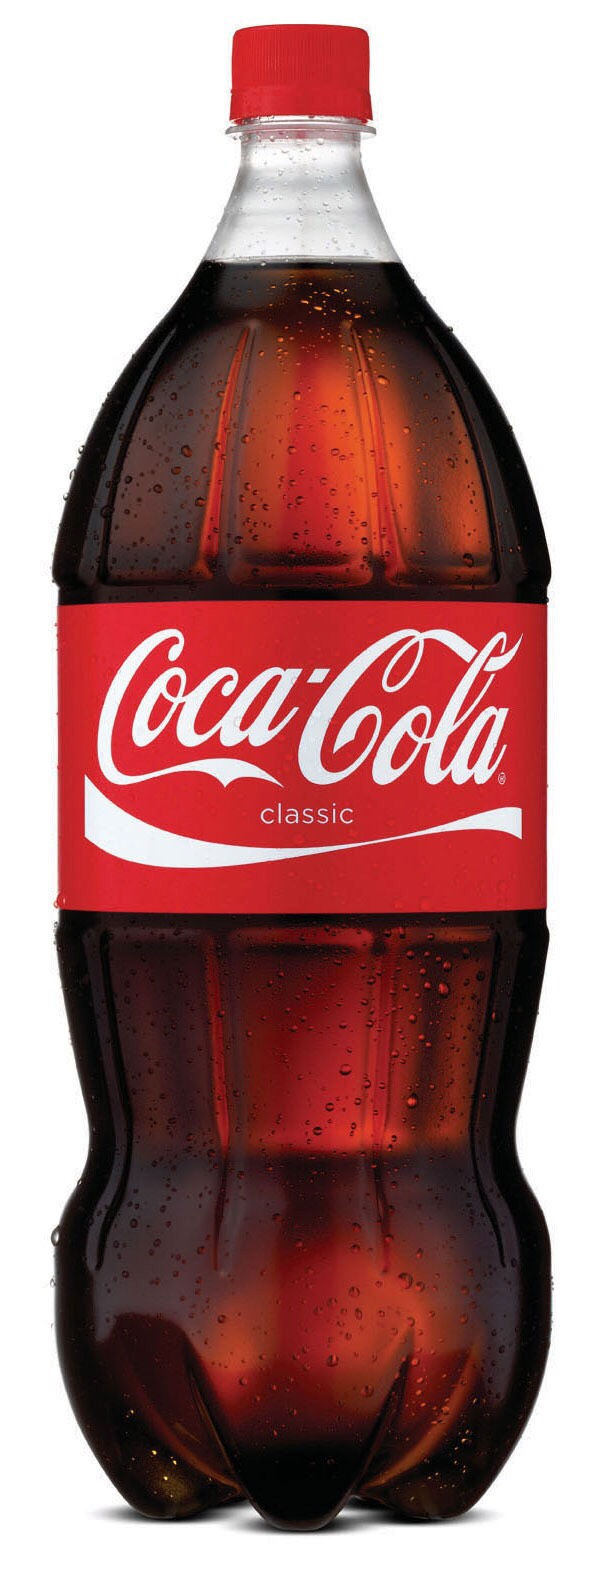 It's very simple but it isn't easy.  Cut out drinking cola.  Stop all together: no diets, no sugar free, no zeros... No carbonated soft drinks at all.   .